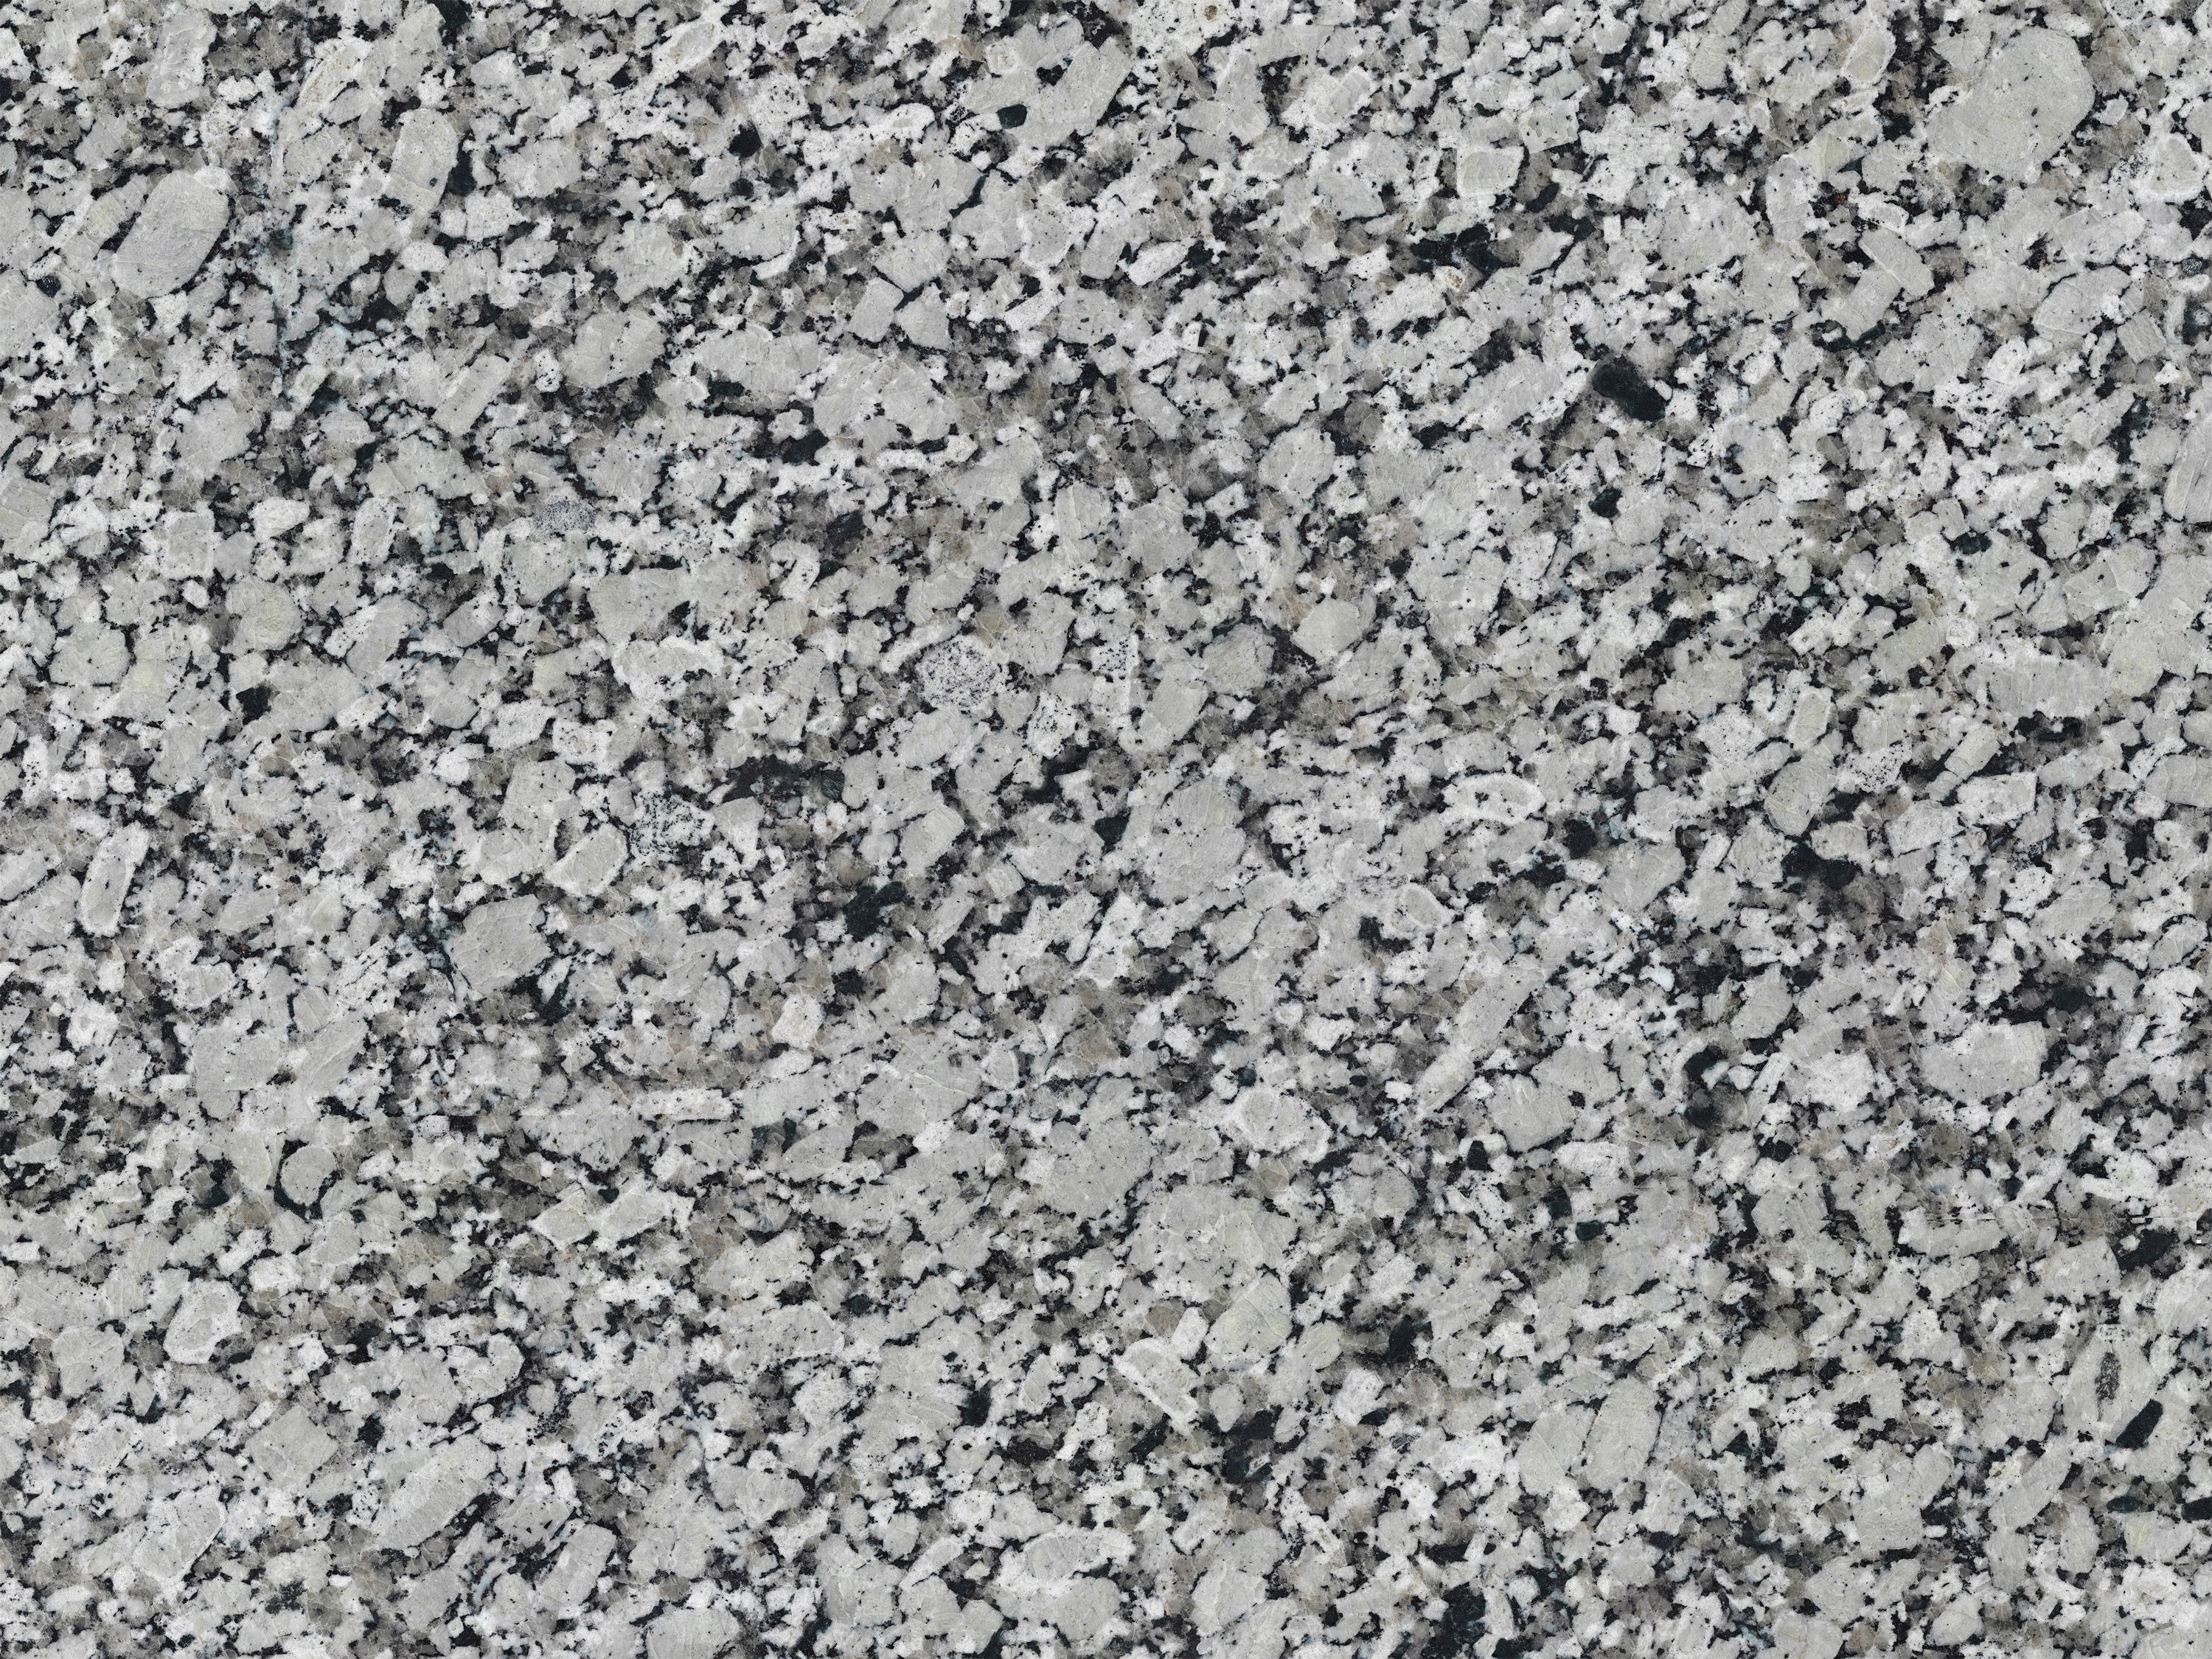 Scalea Granite Gran Valle Mineral Composite Panels From